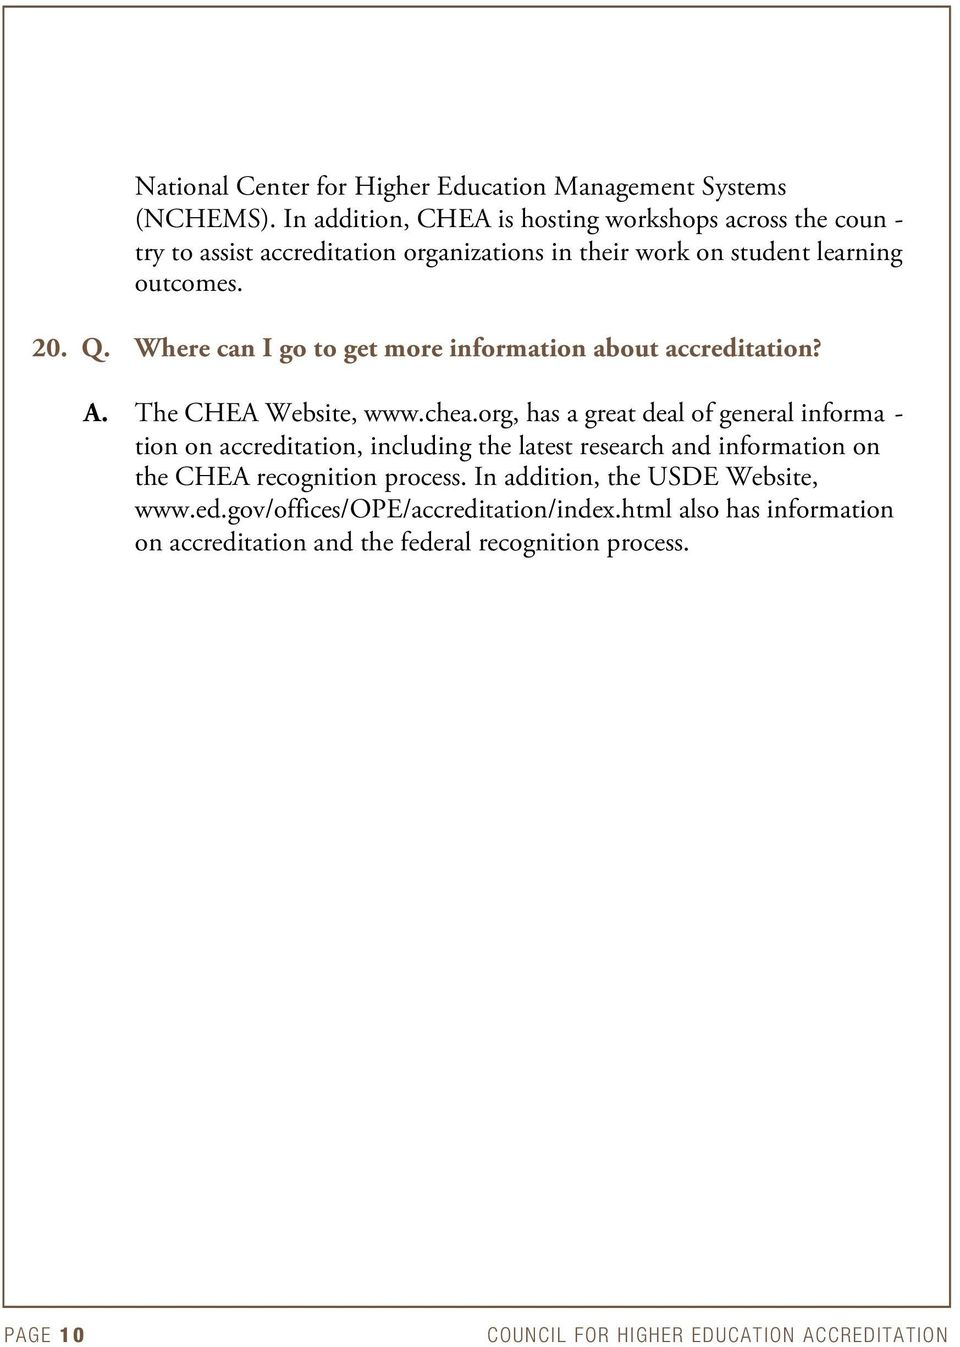 Where can I go to get more information about accreditation? A. The CHEA Website, www.chea.